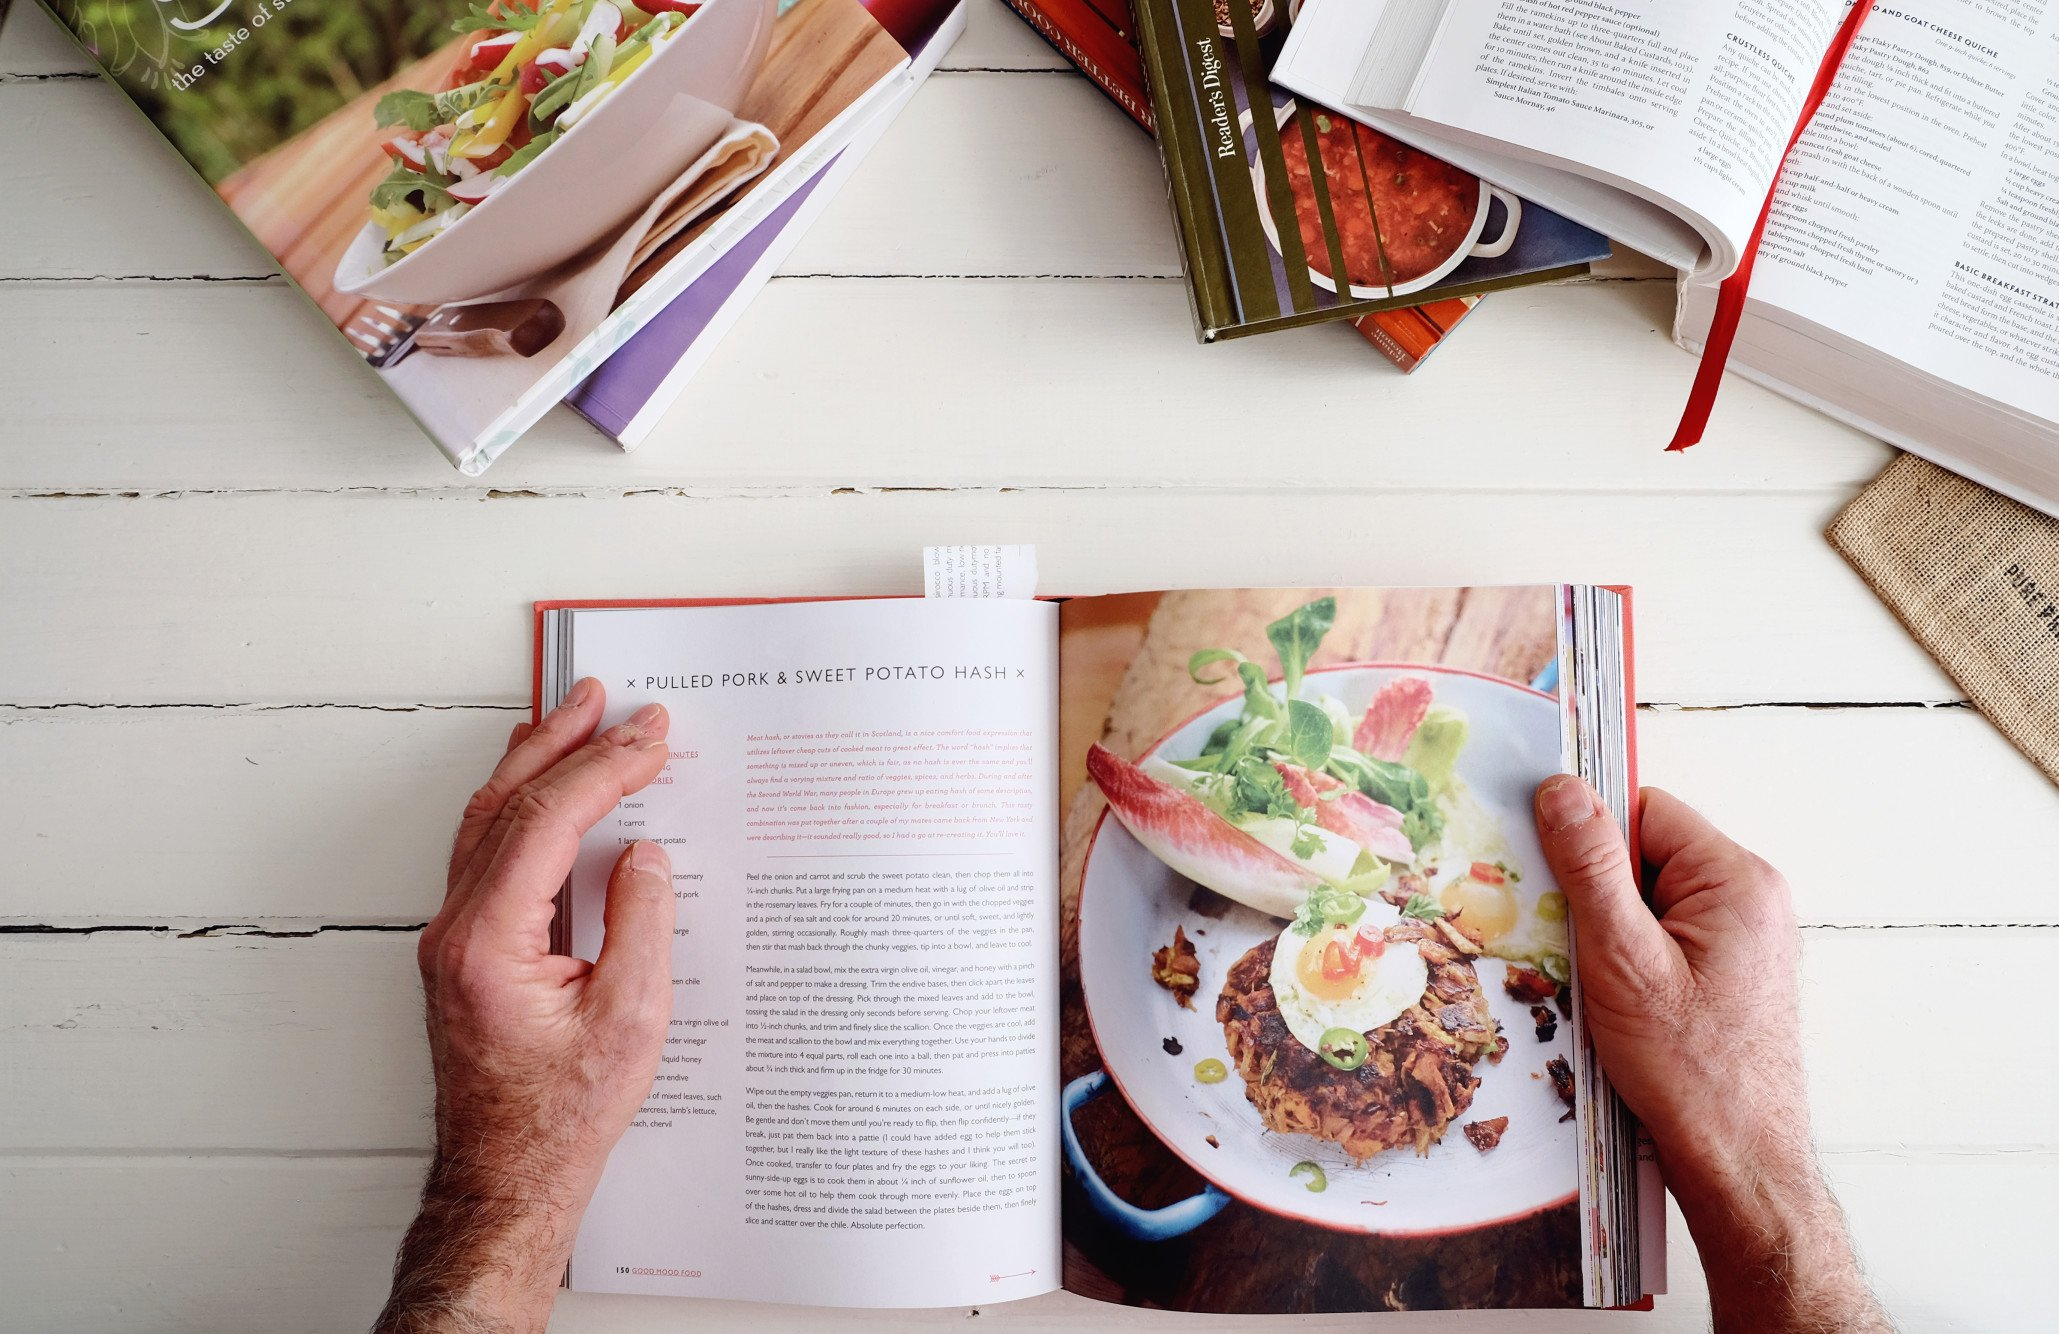 Best Grilling Cookbooks For Beginners & Grill Masters